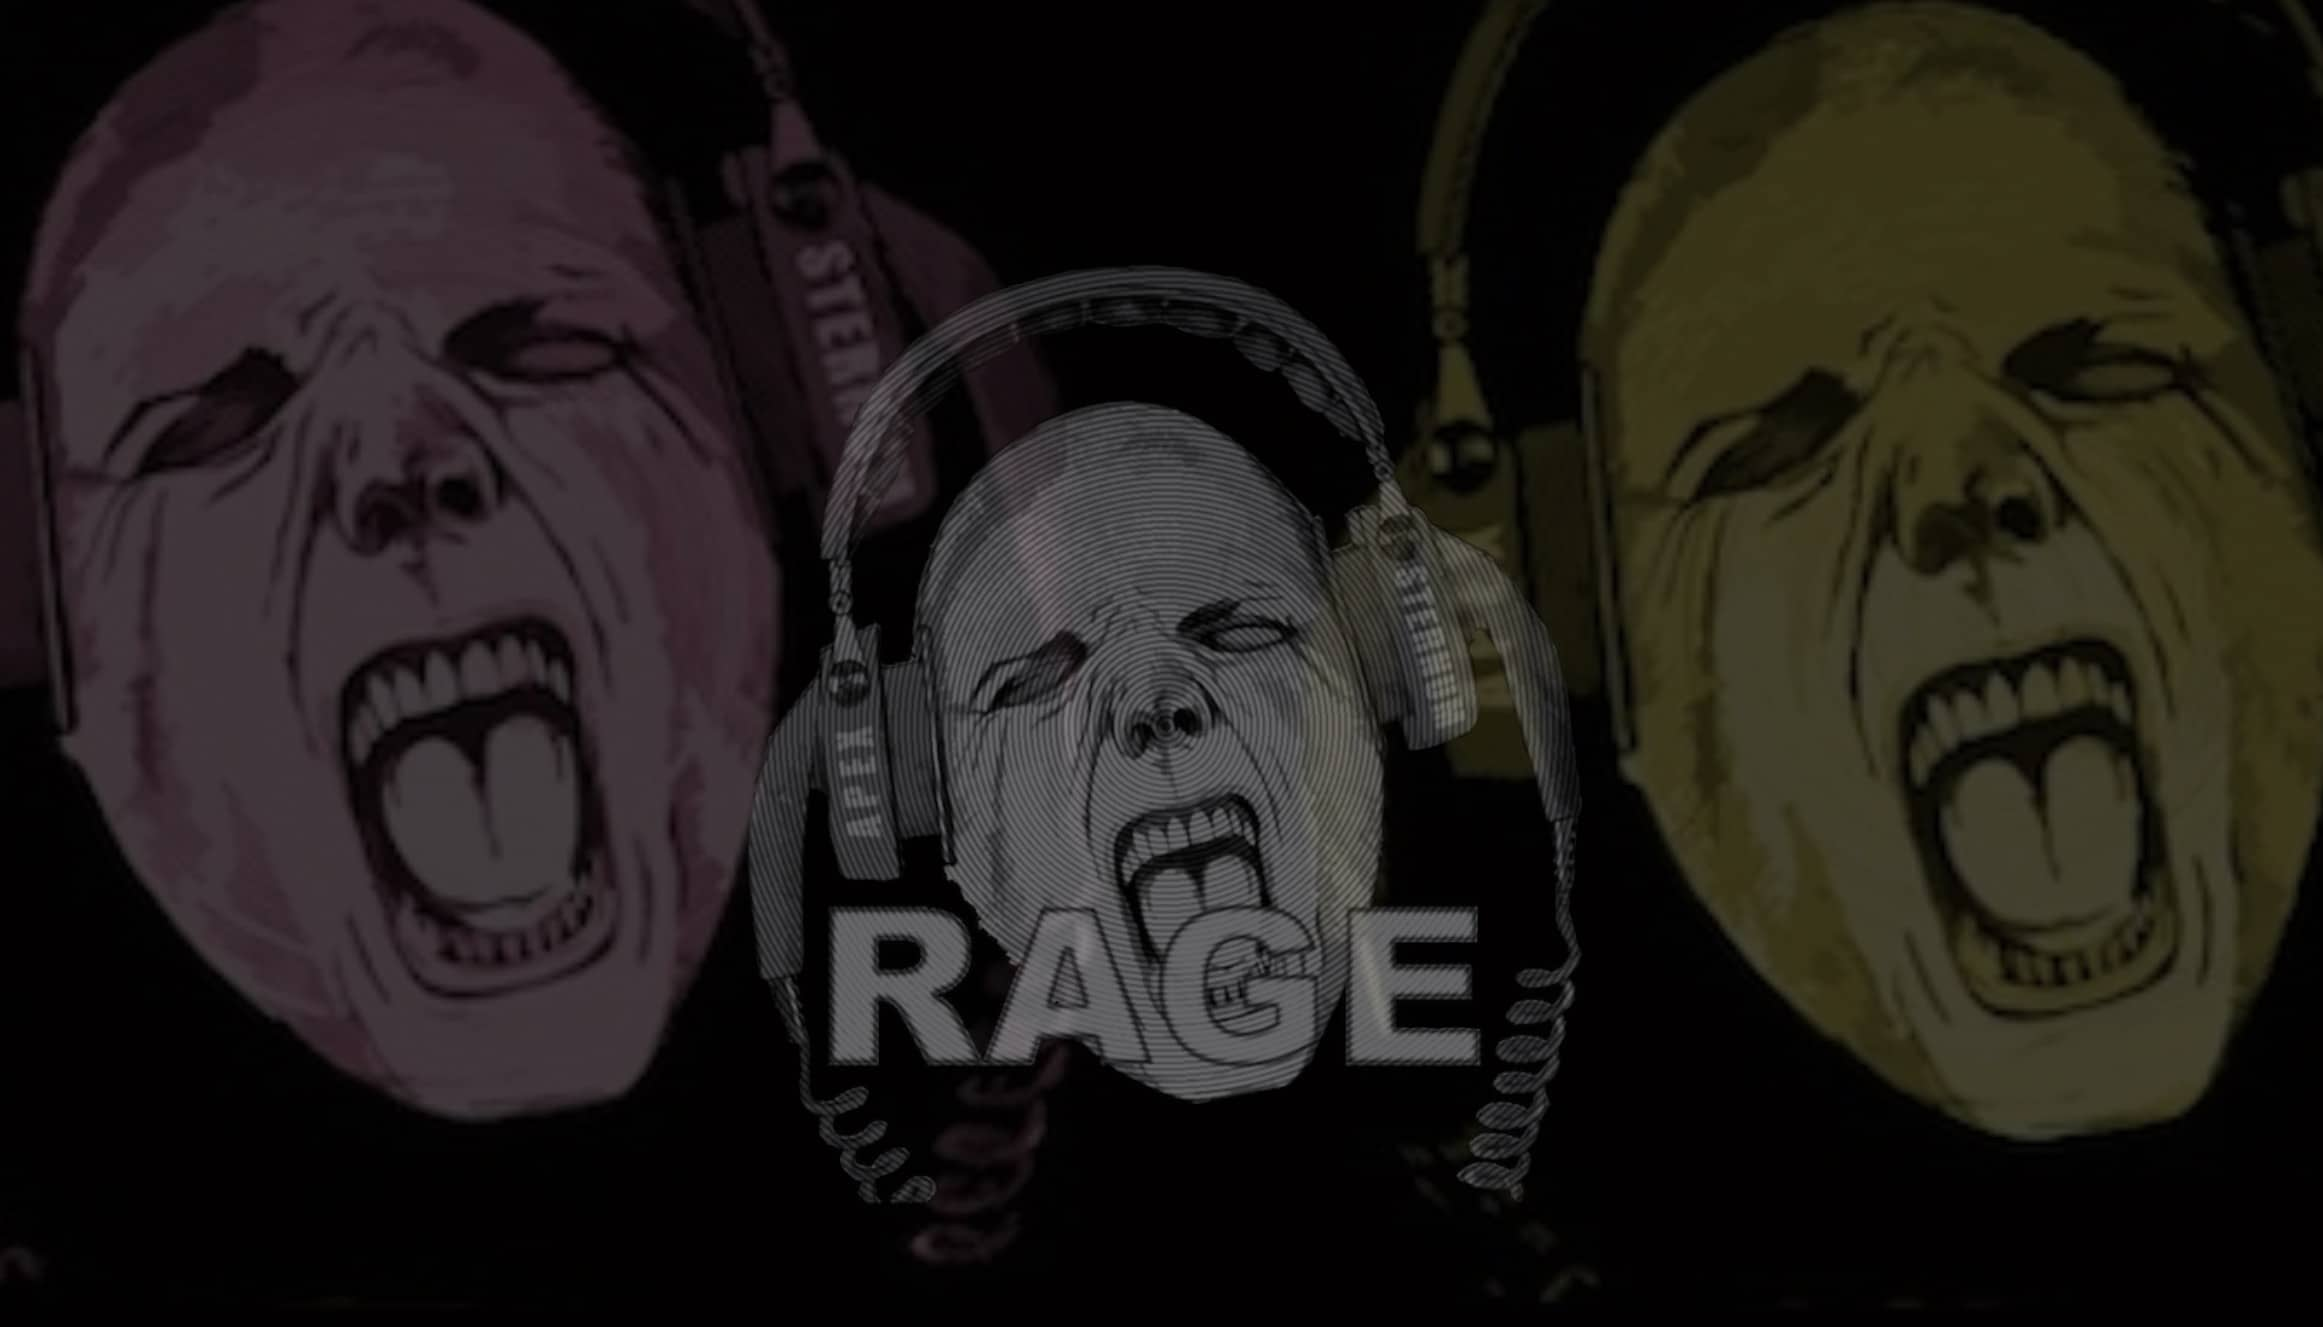 RAGE podcast 700 400